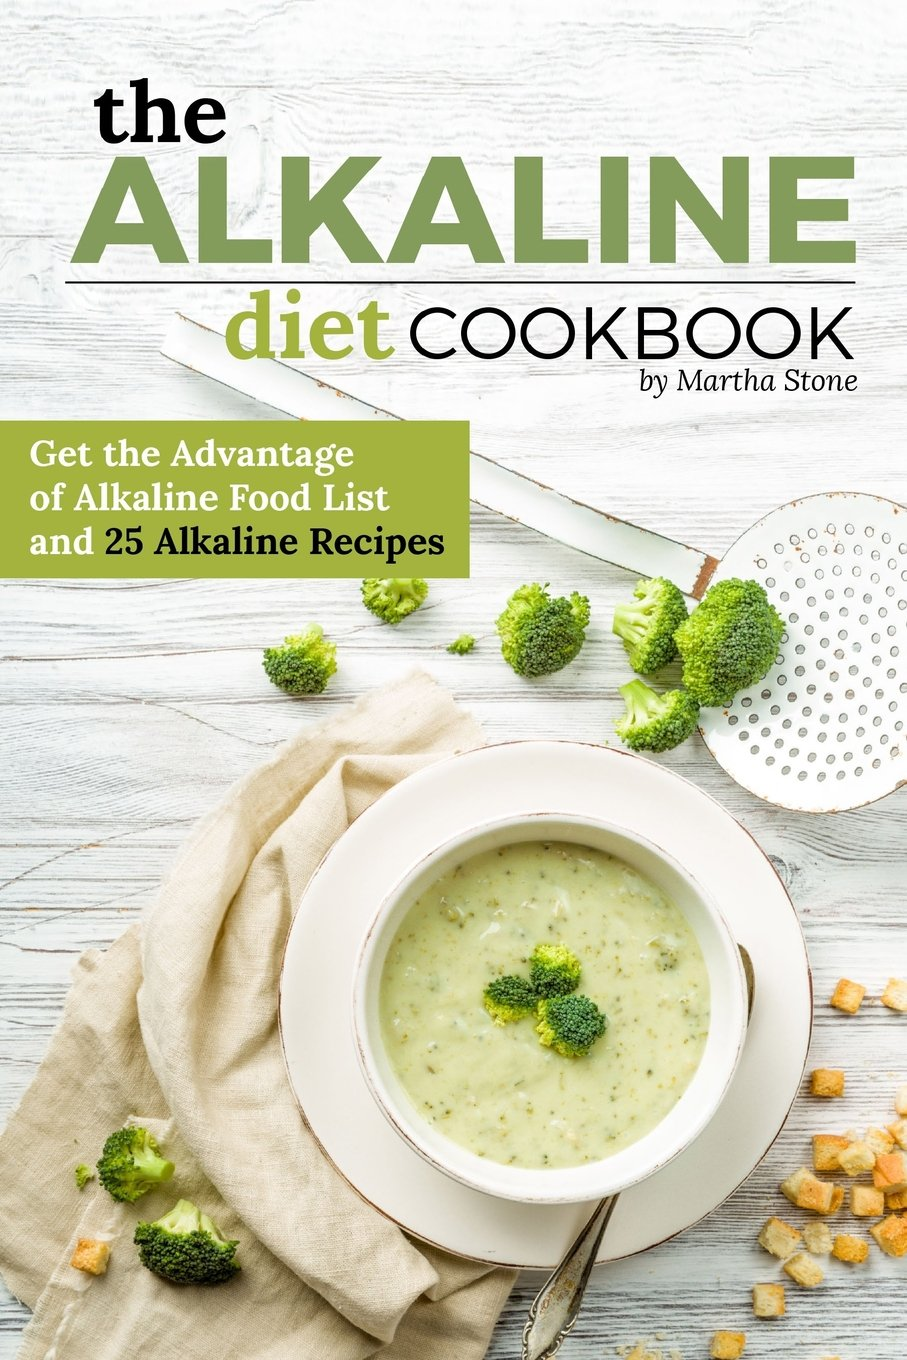 Download The Alkaline Diet Cookbook: Get the Advantage of Alkaline Food List and 25 Alkaline Recipes - Easy Acid Alkaline Diet Cookbook pdf epub